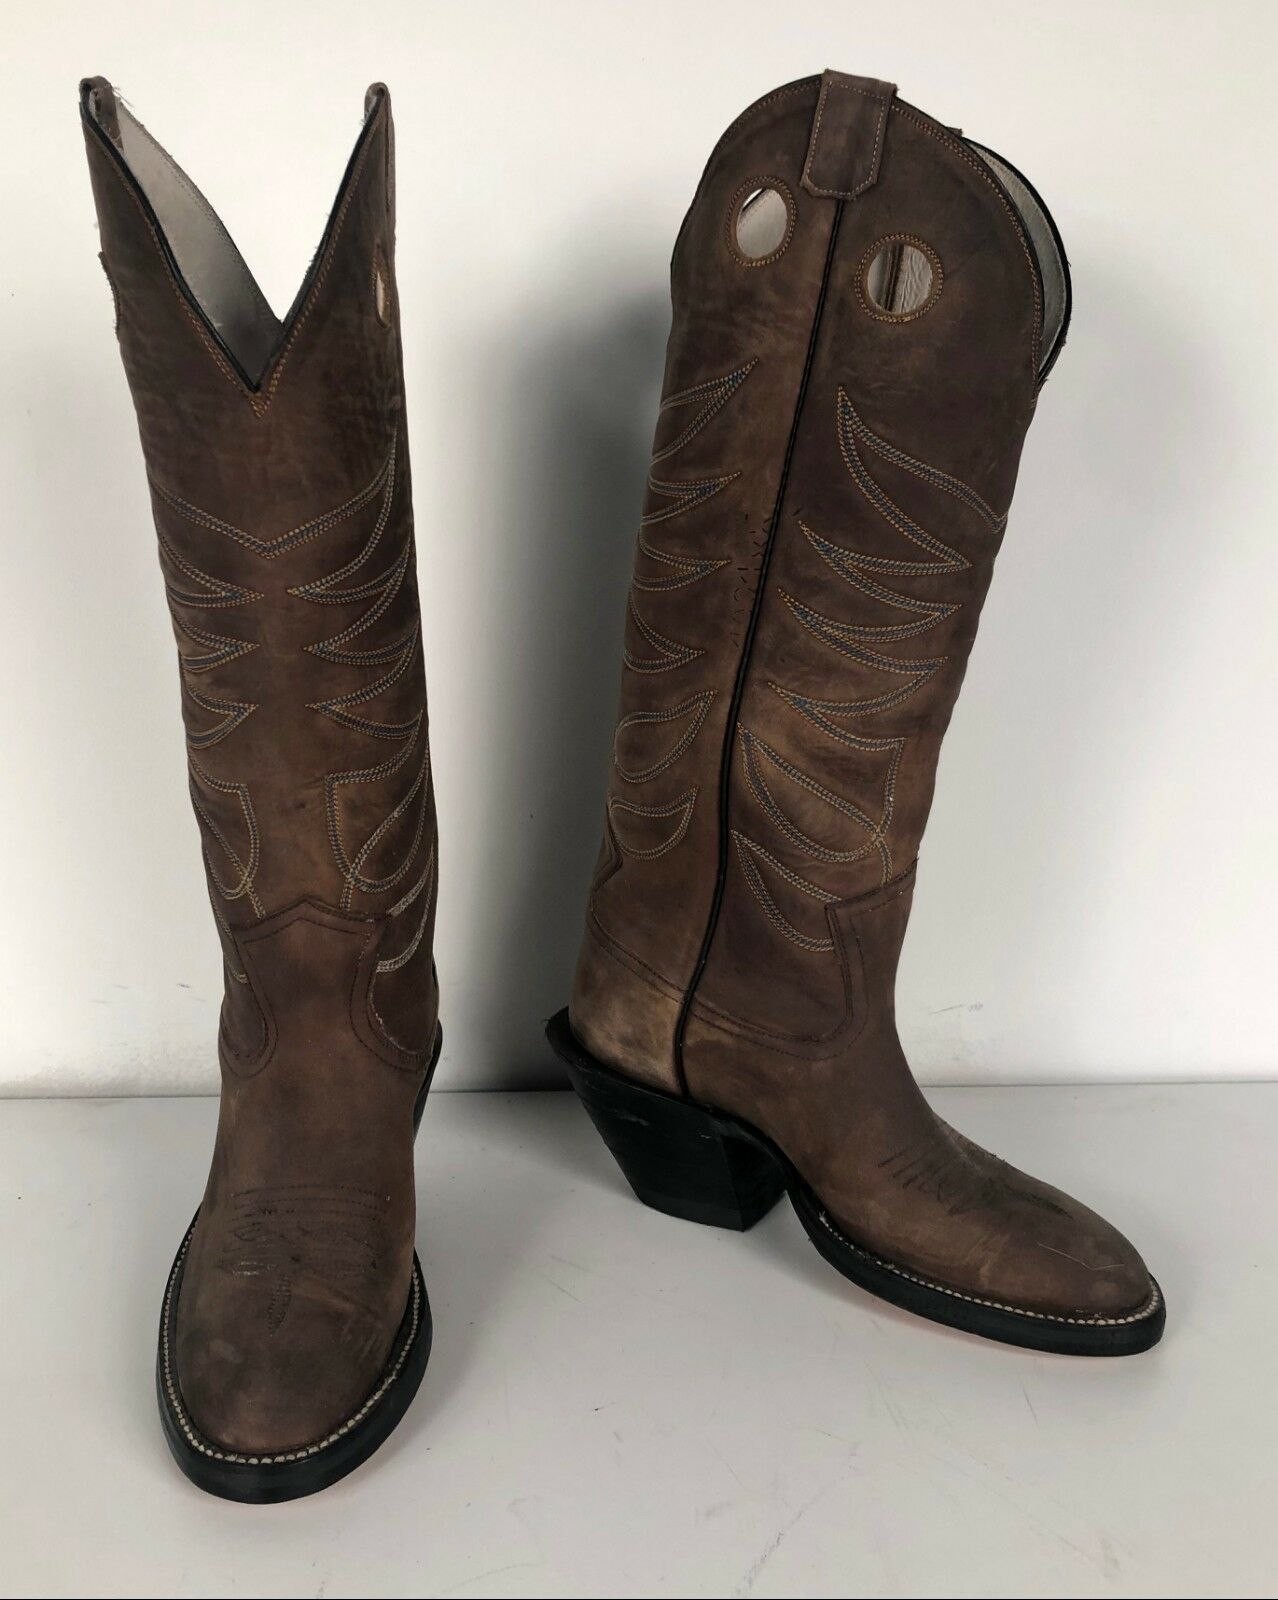 Jose Sanchez stivali, 7.5B Men's Buckaroo Marroneee Mulehide Working Cowboy stivali